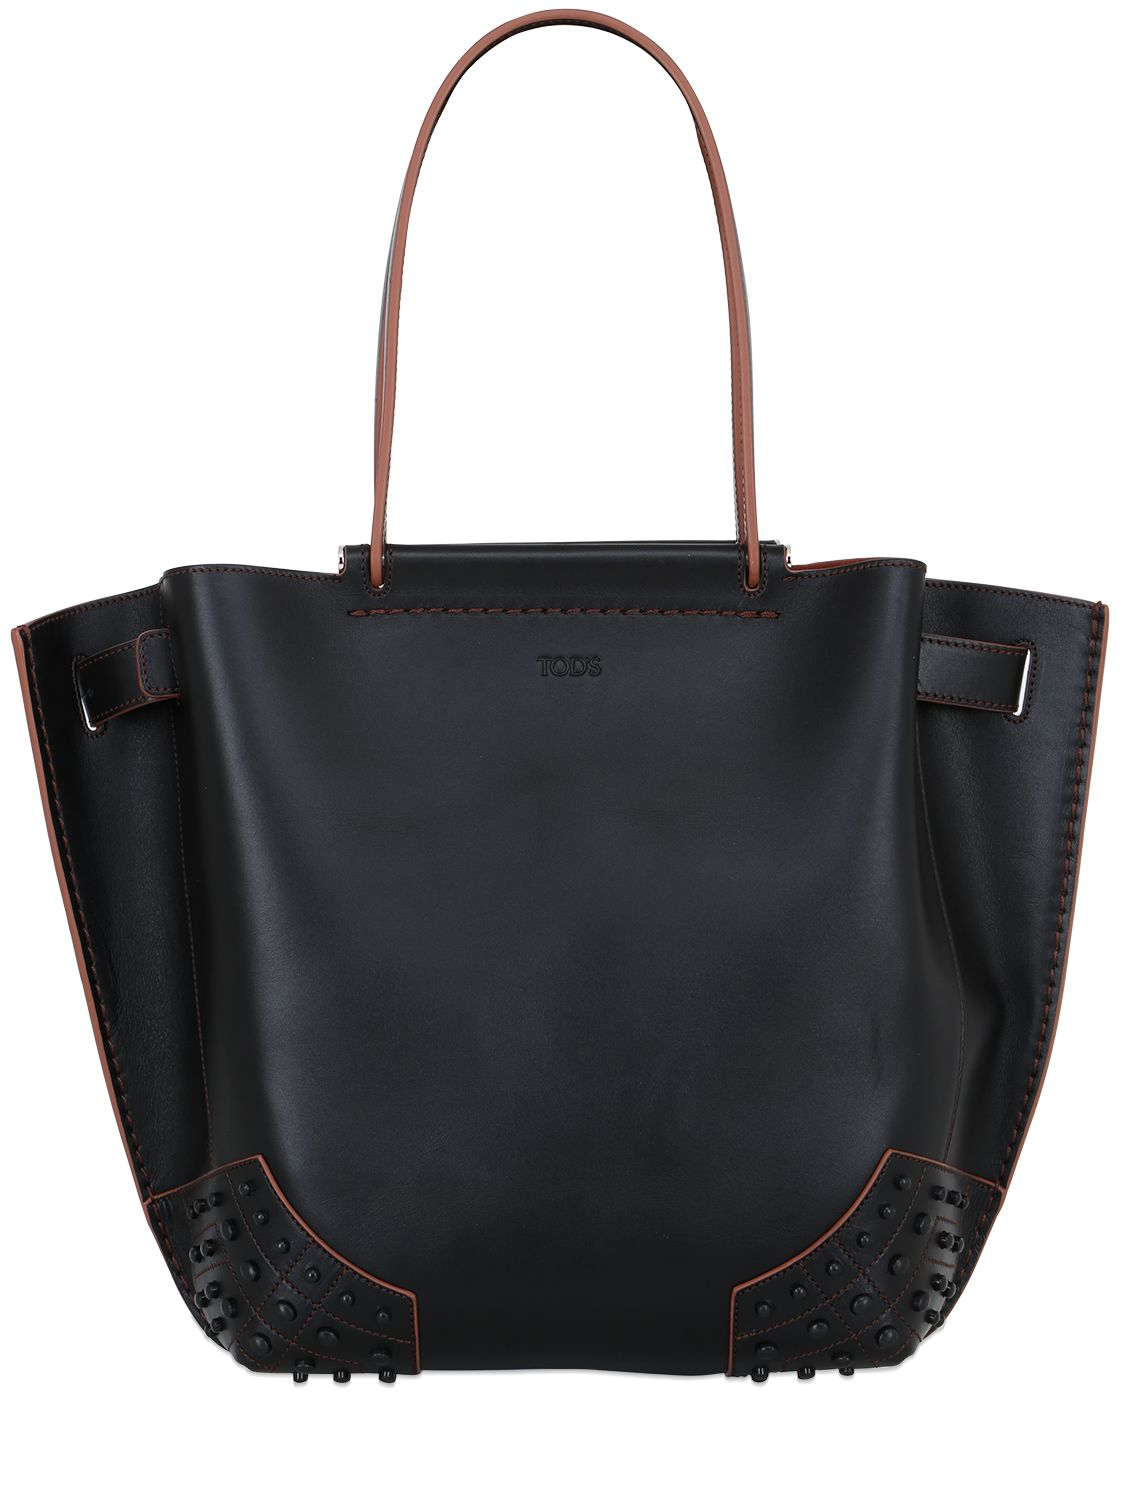 tod s wave leather tote bag in black lyst